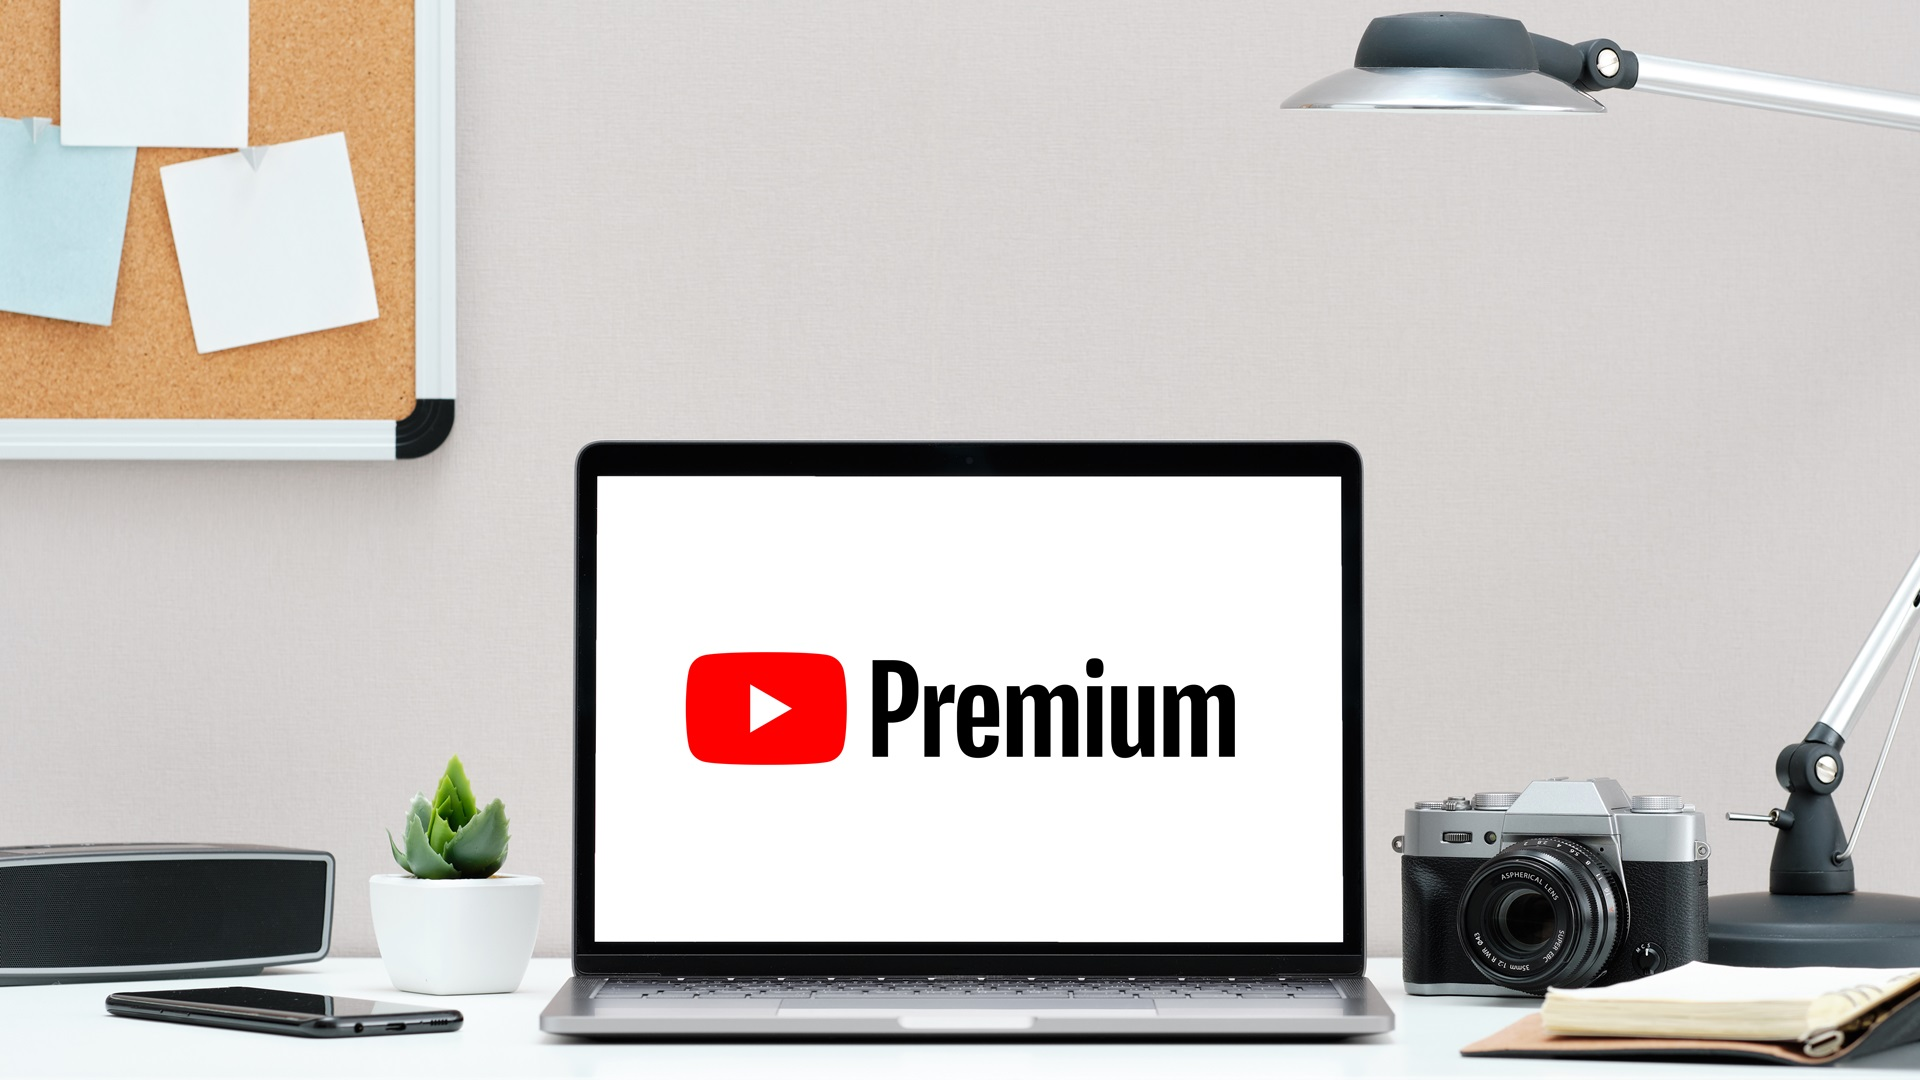 YouTube Premium without ads for only $0.50 per month! Step-by-step guide on how to activate it.